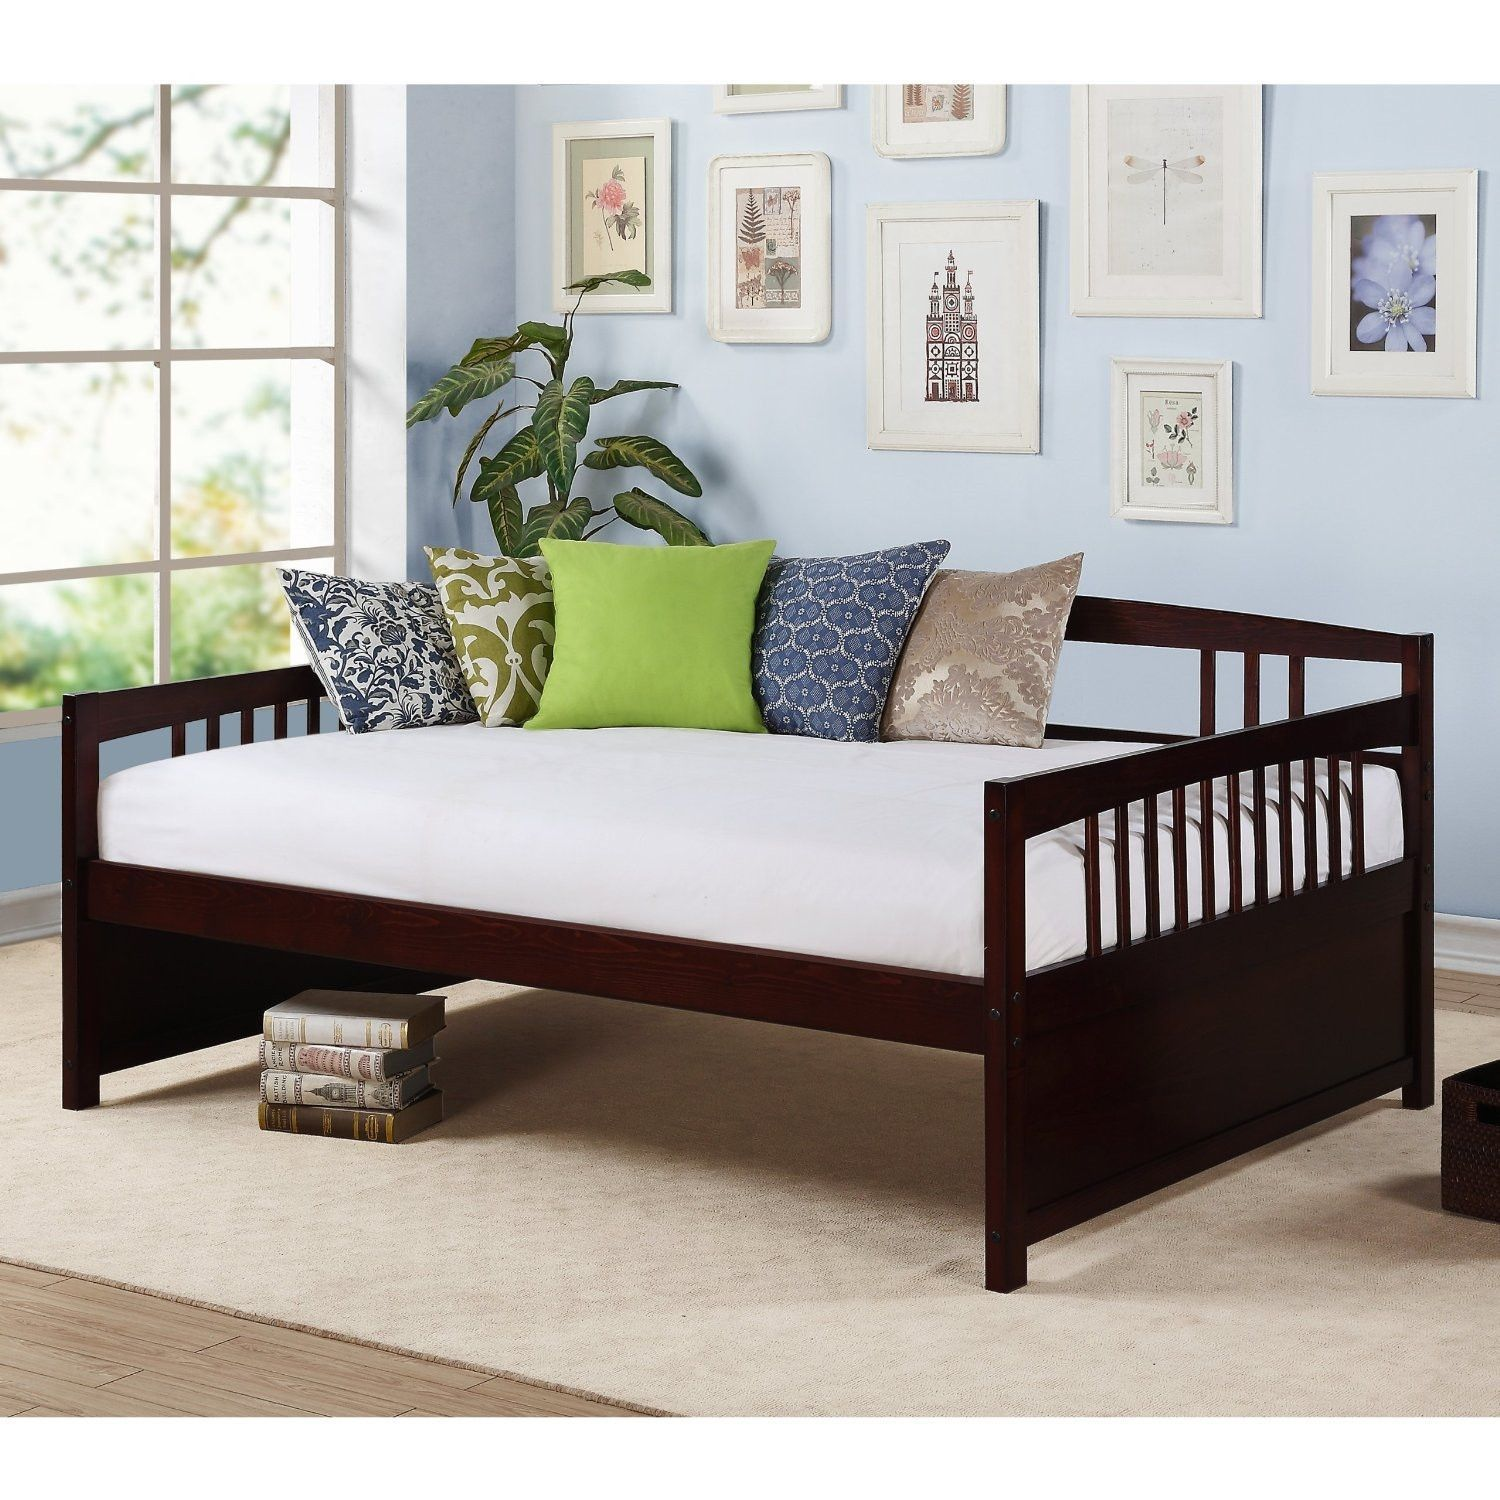 ikea tarva daybed for sale